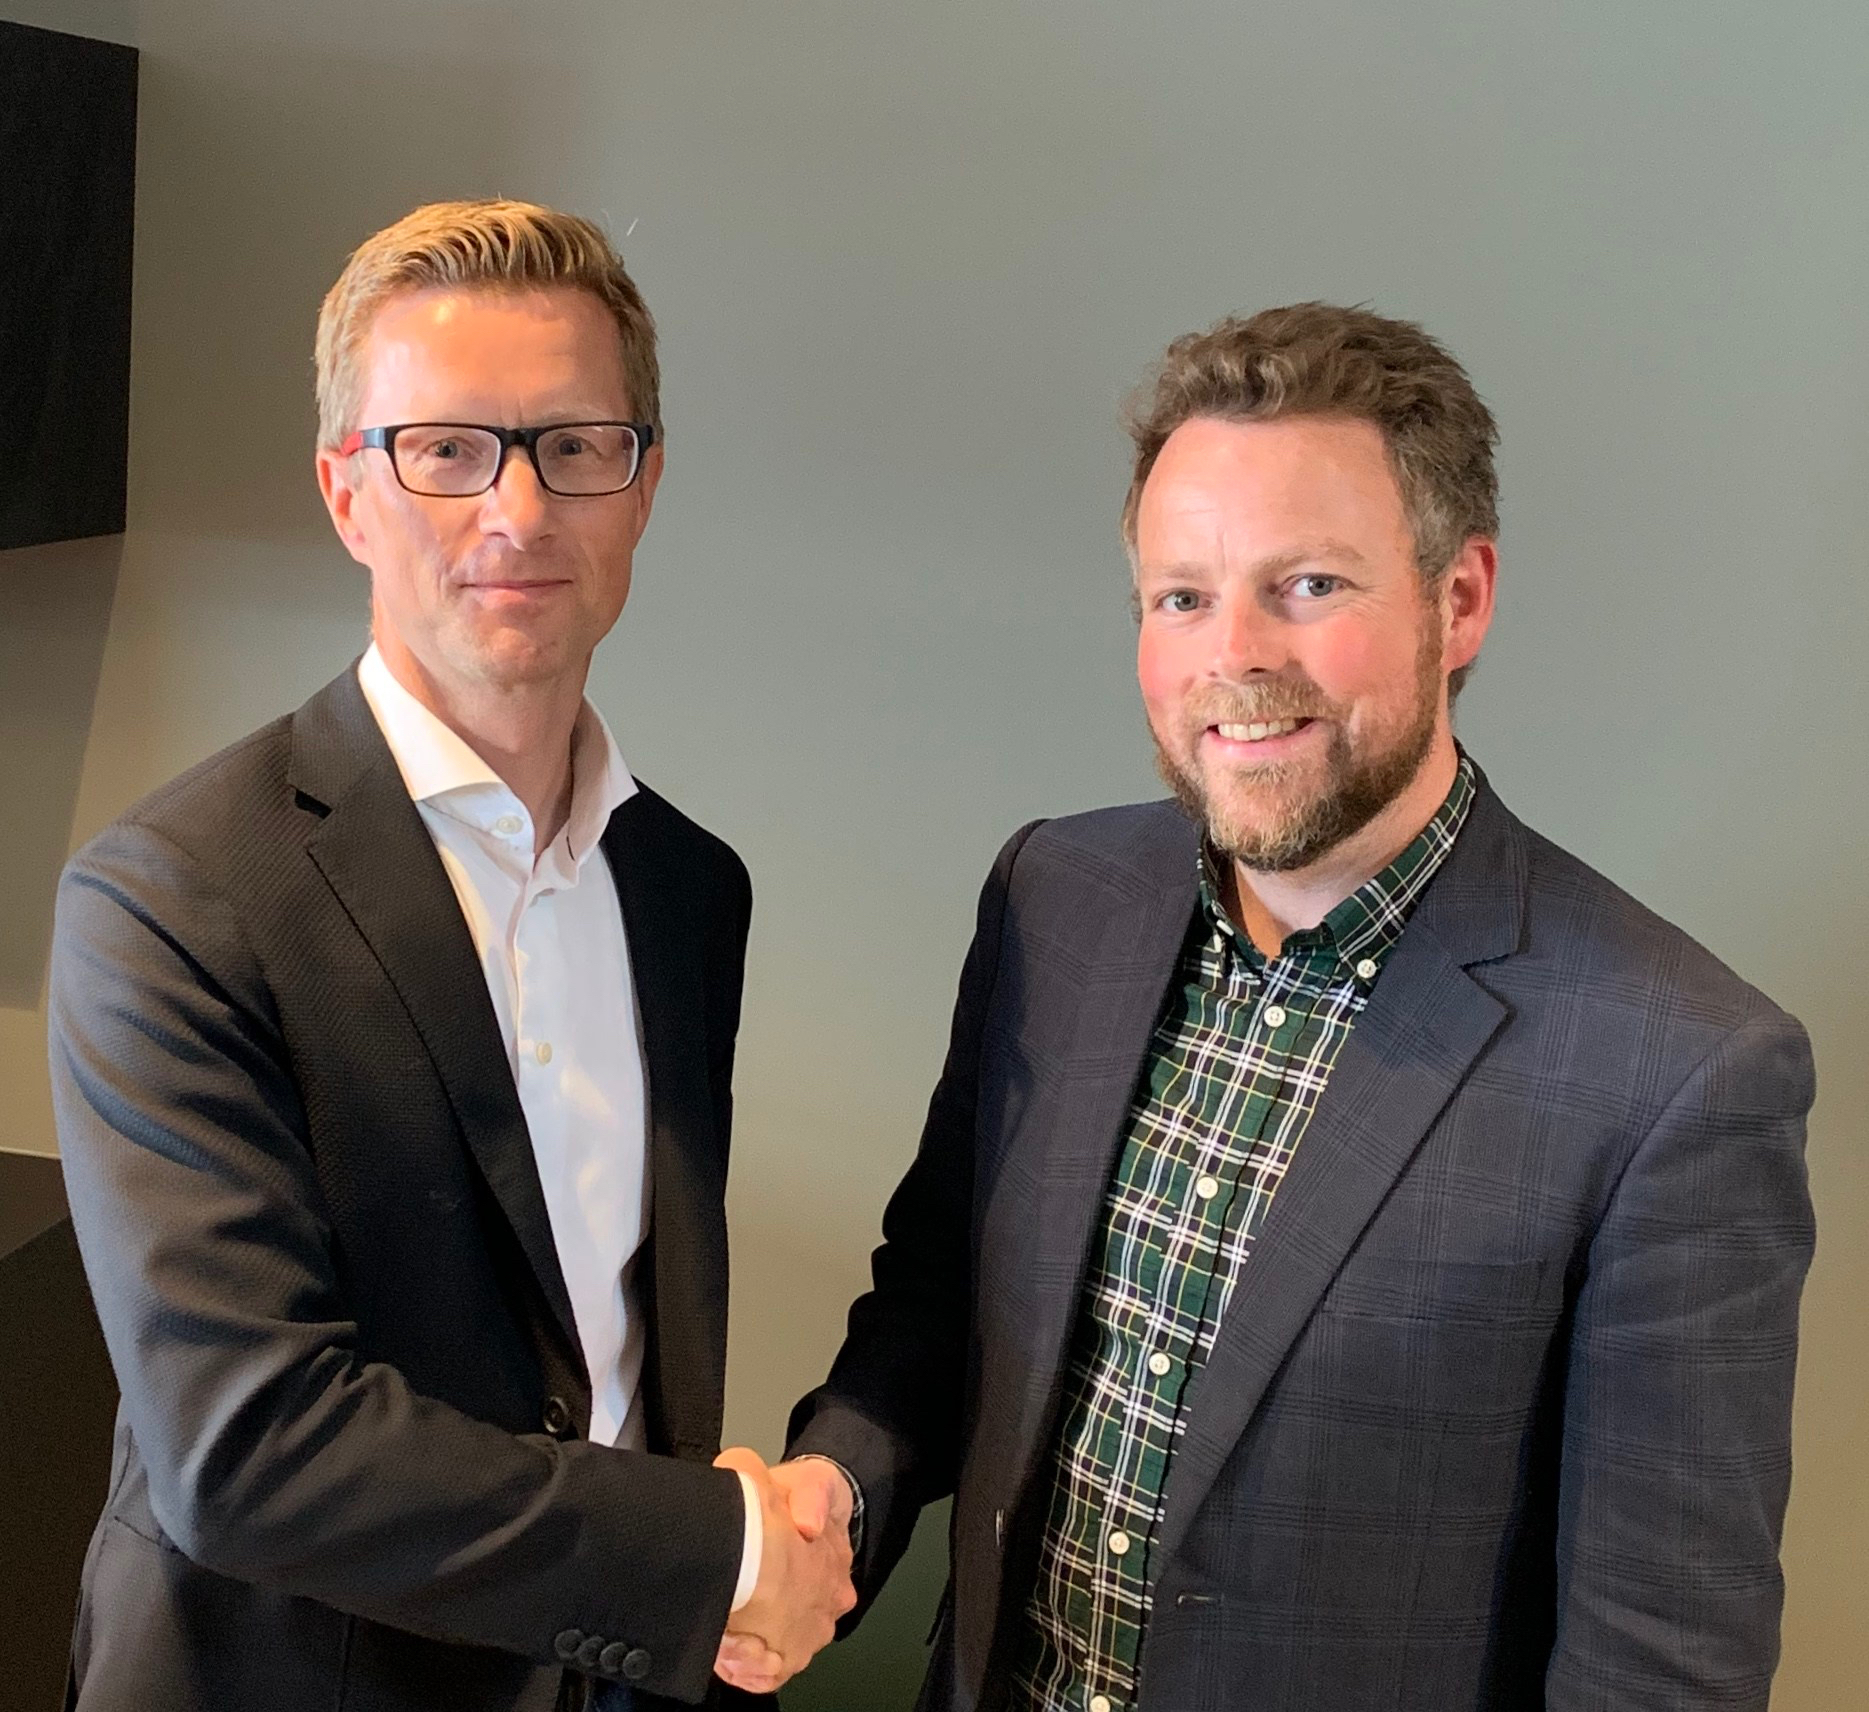 Torbjørn Røe Isaksen visits Vestkorn and CEO Aslak Lie